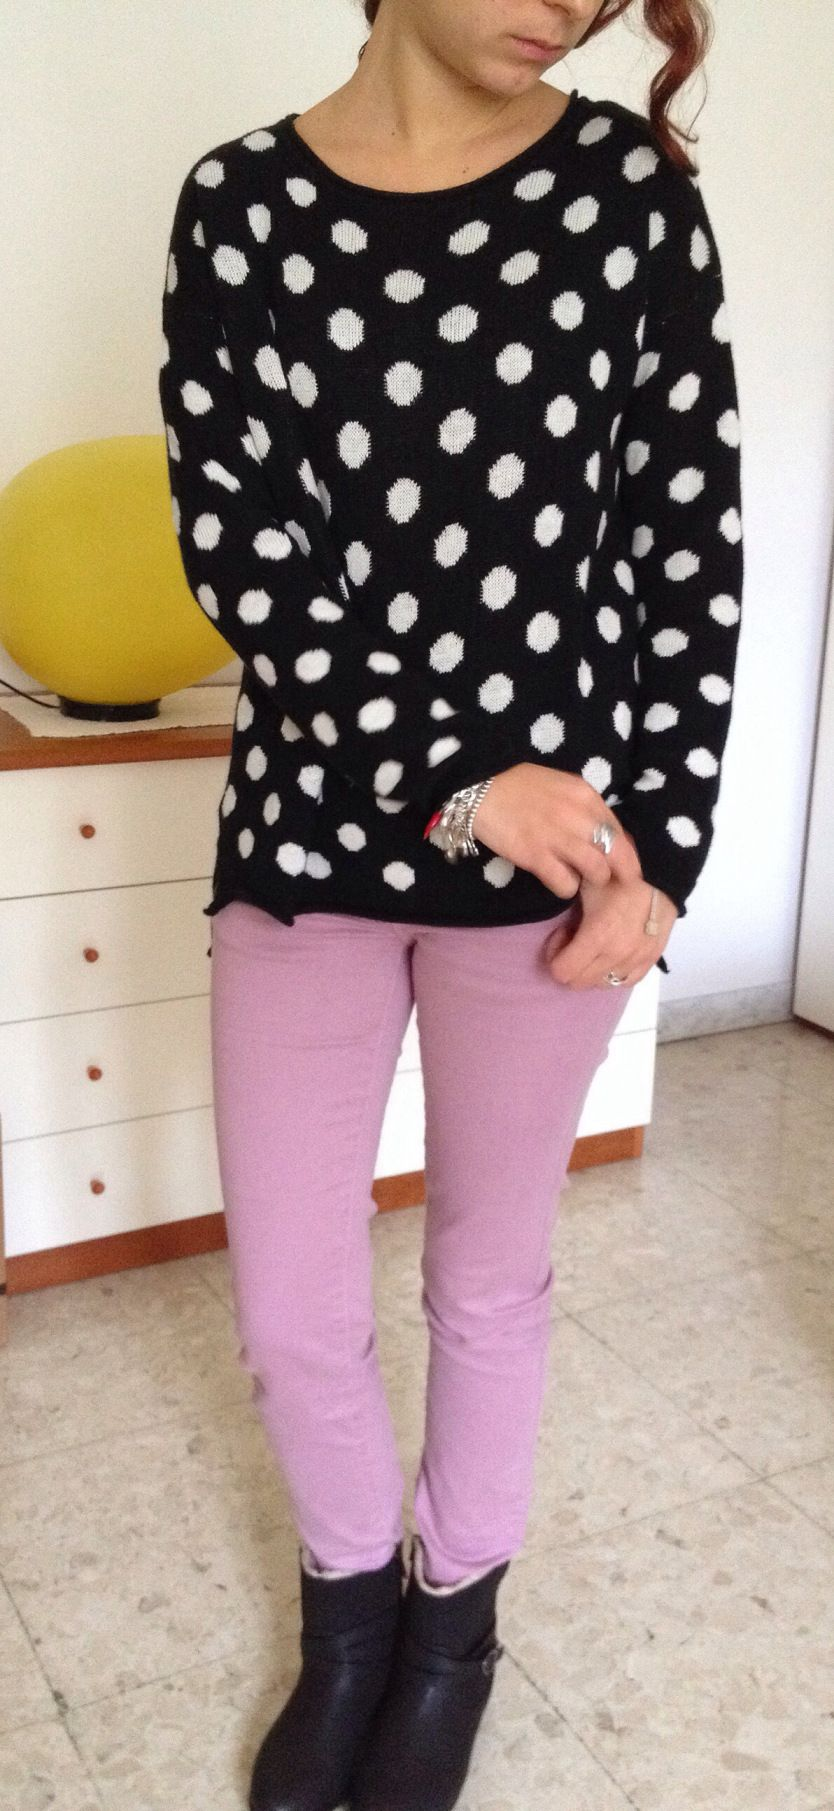 Pink and Dots!